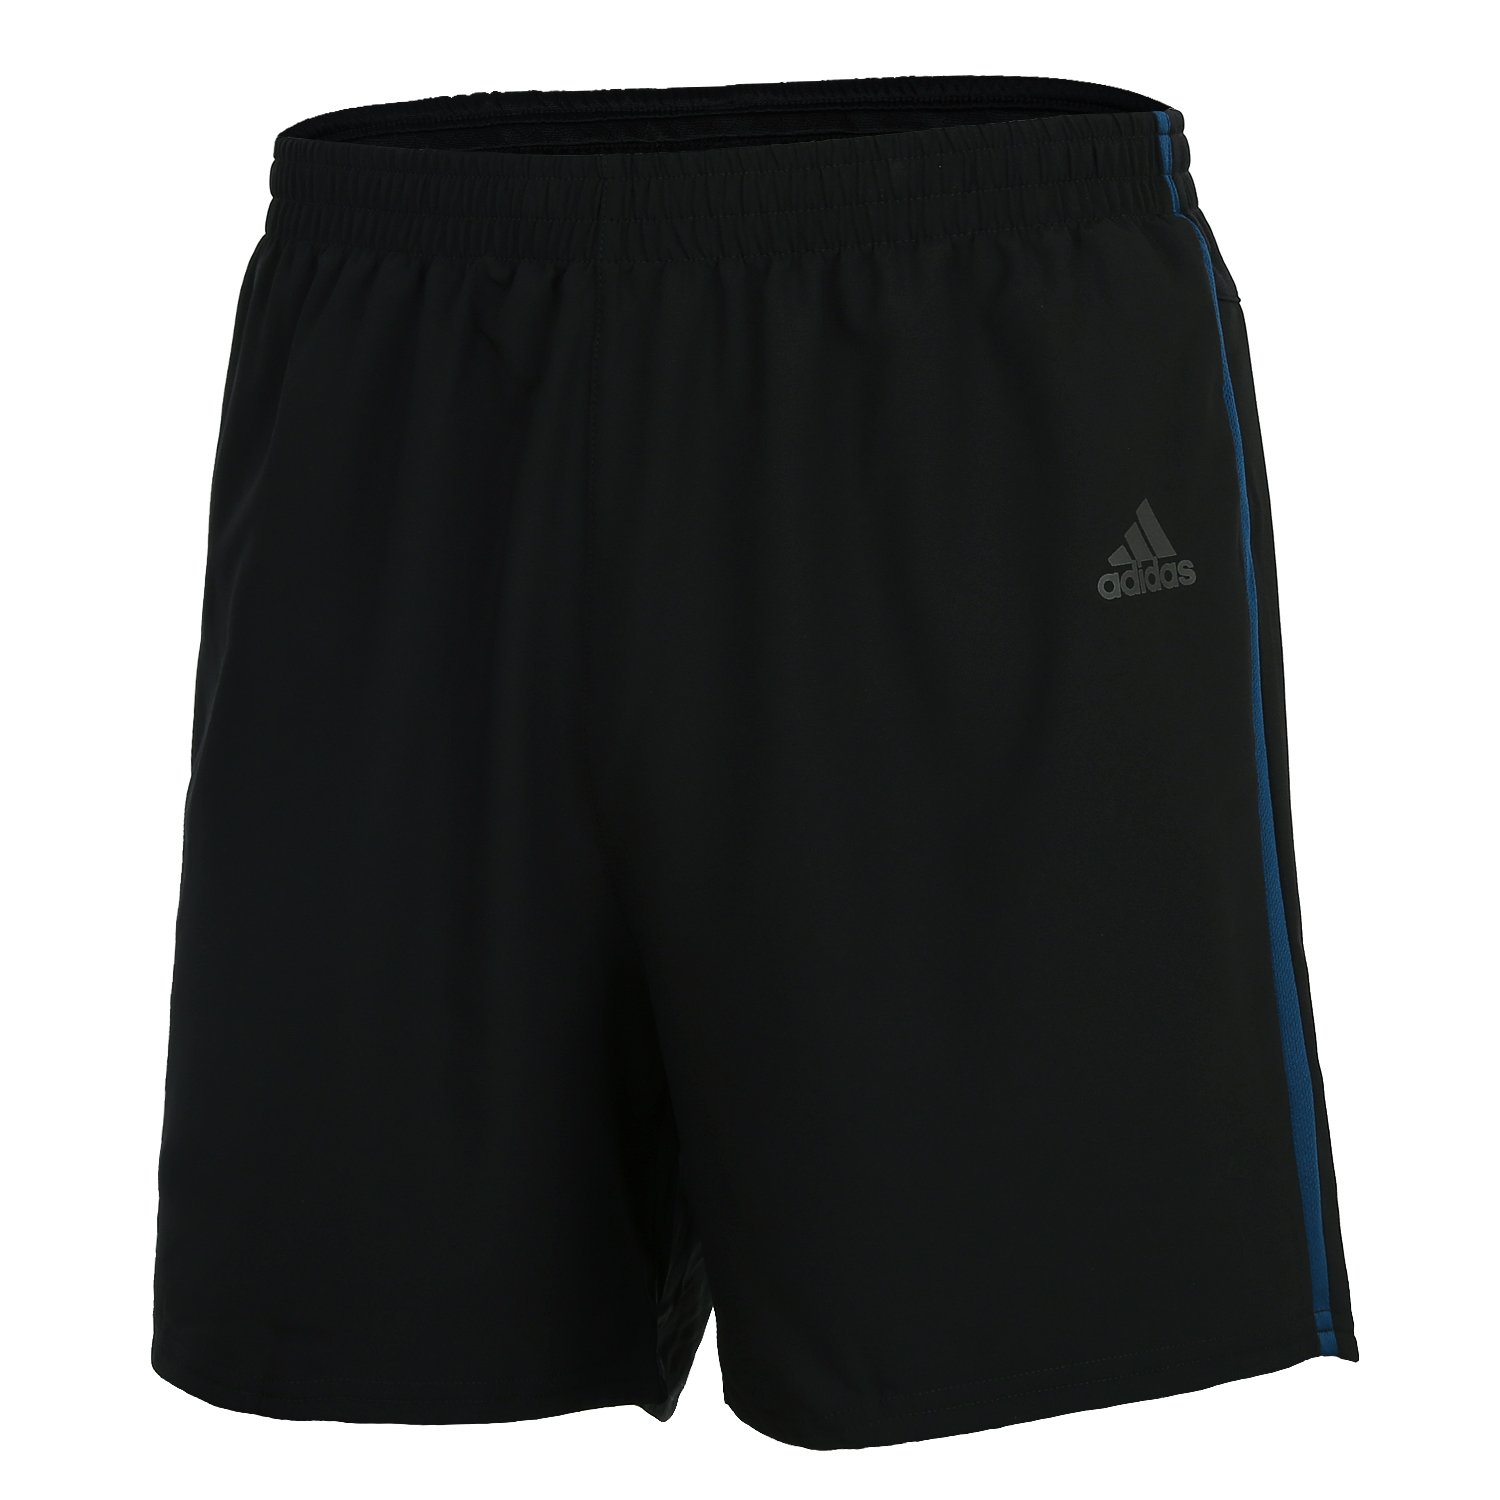 Беговые шорты Adidas Adizero Sprintweb M - Black / Blue Night